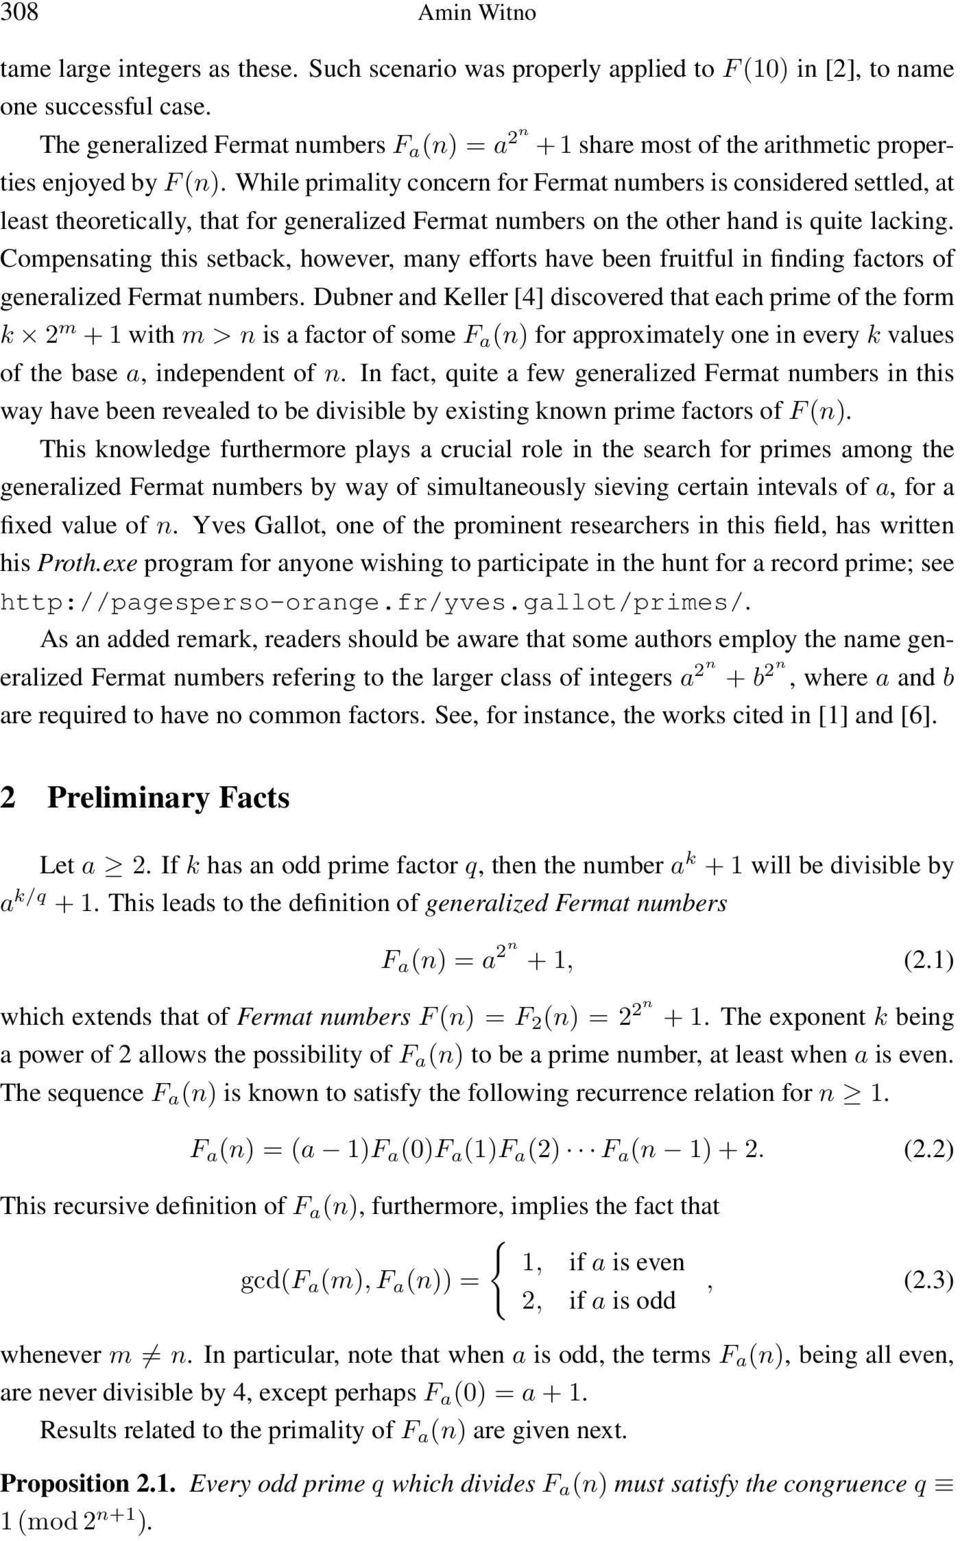 While primality concern for Fermat numbers is considered settled, at least theoretically, that for generalized Fermat numbers on the other hand is quite lacking.